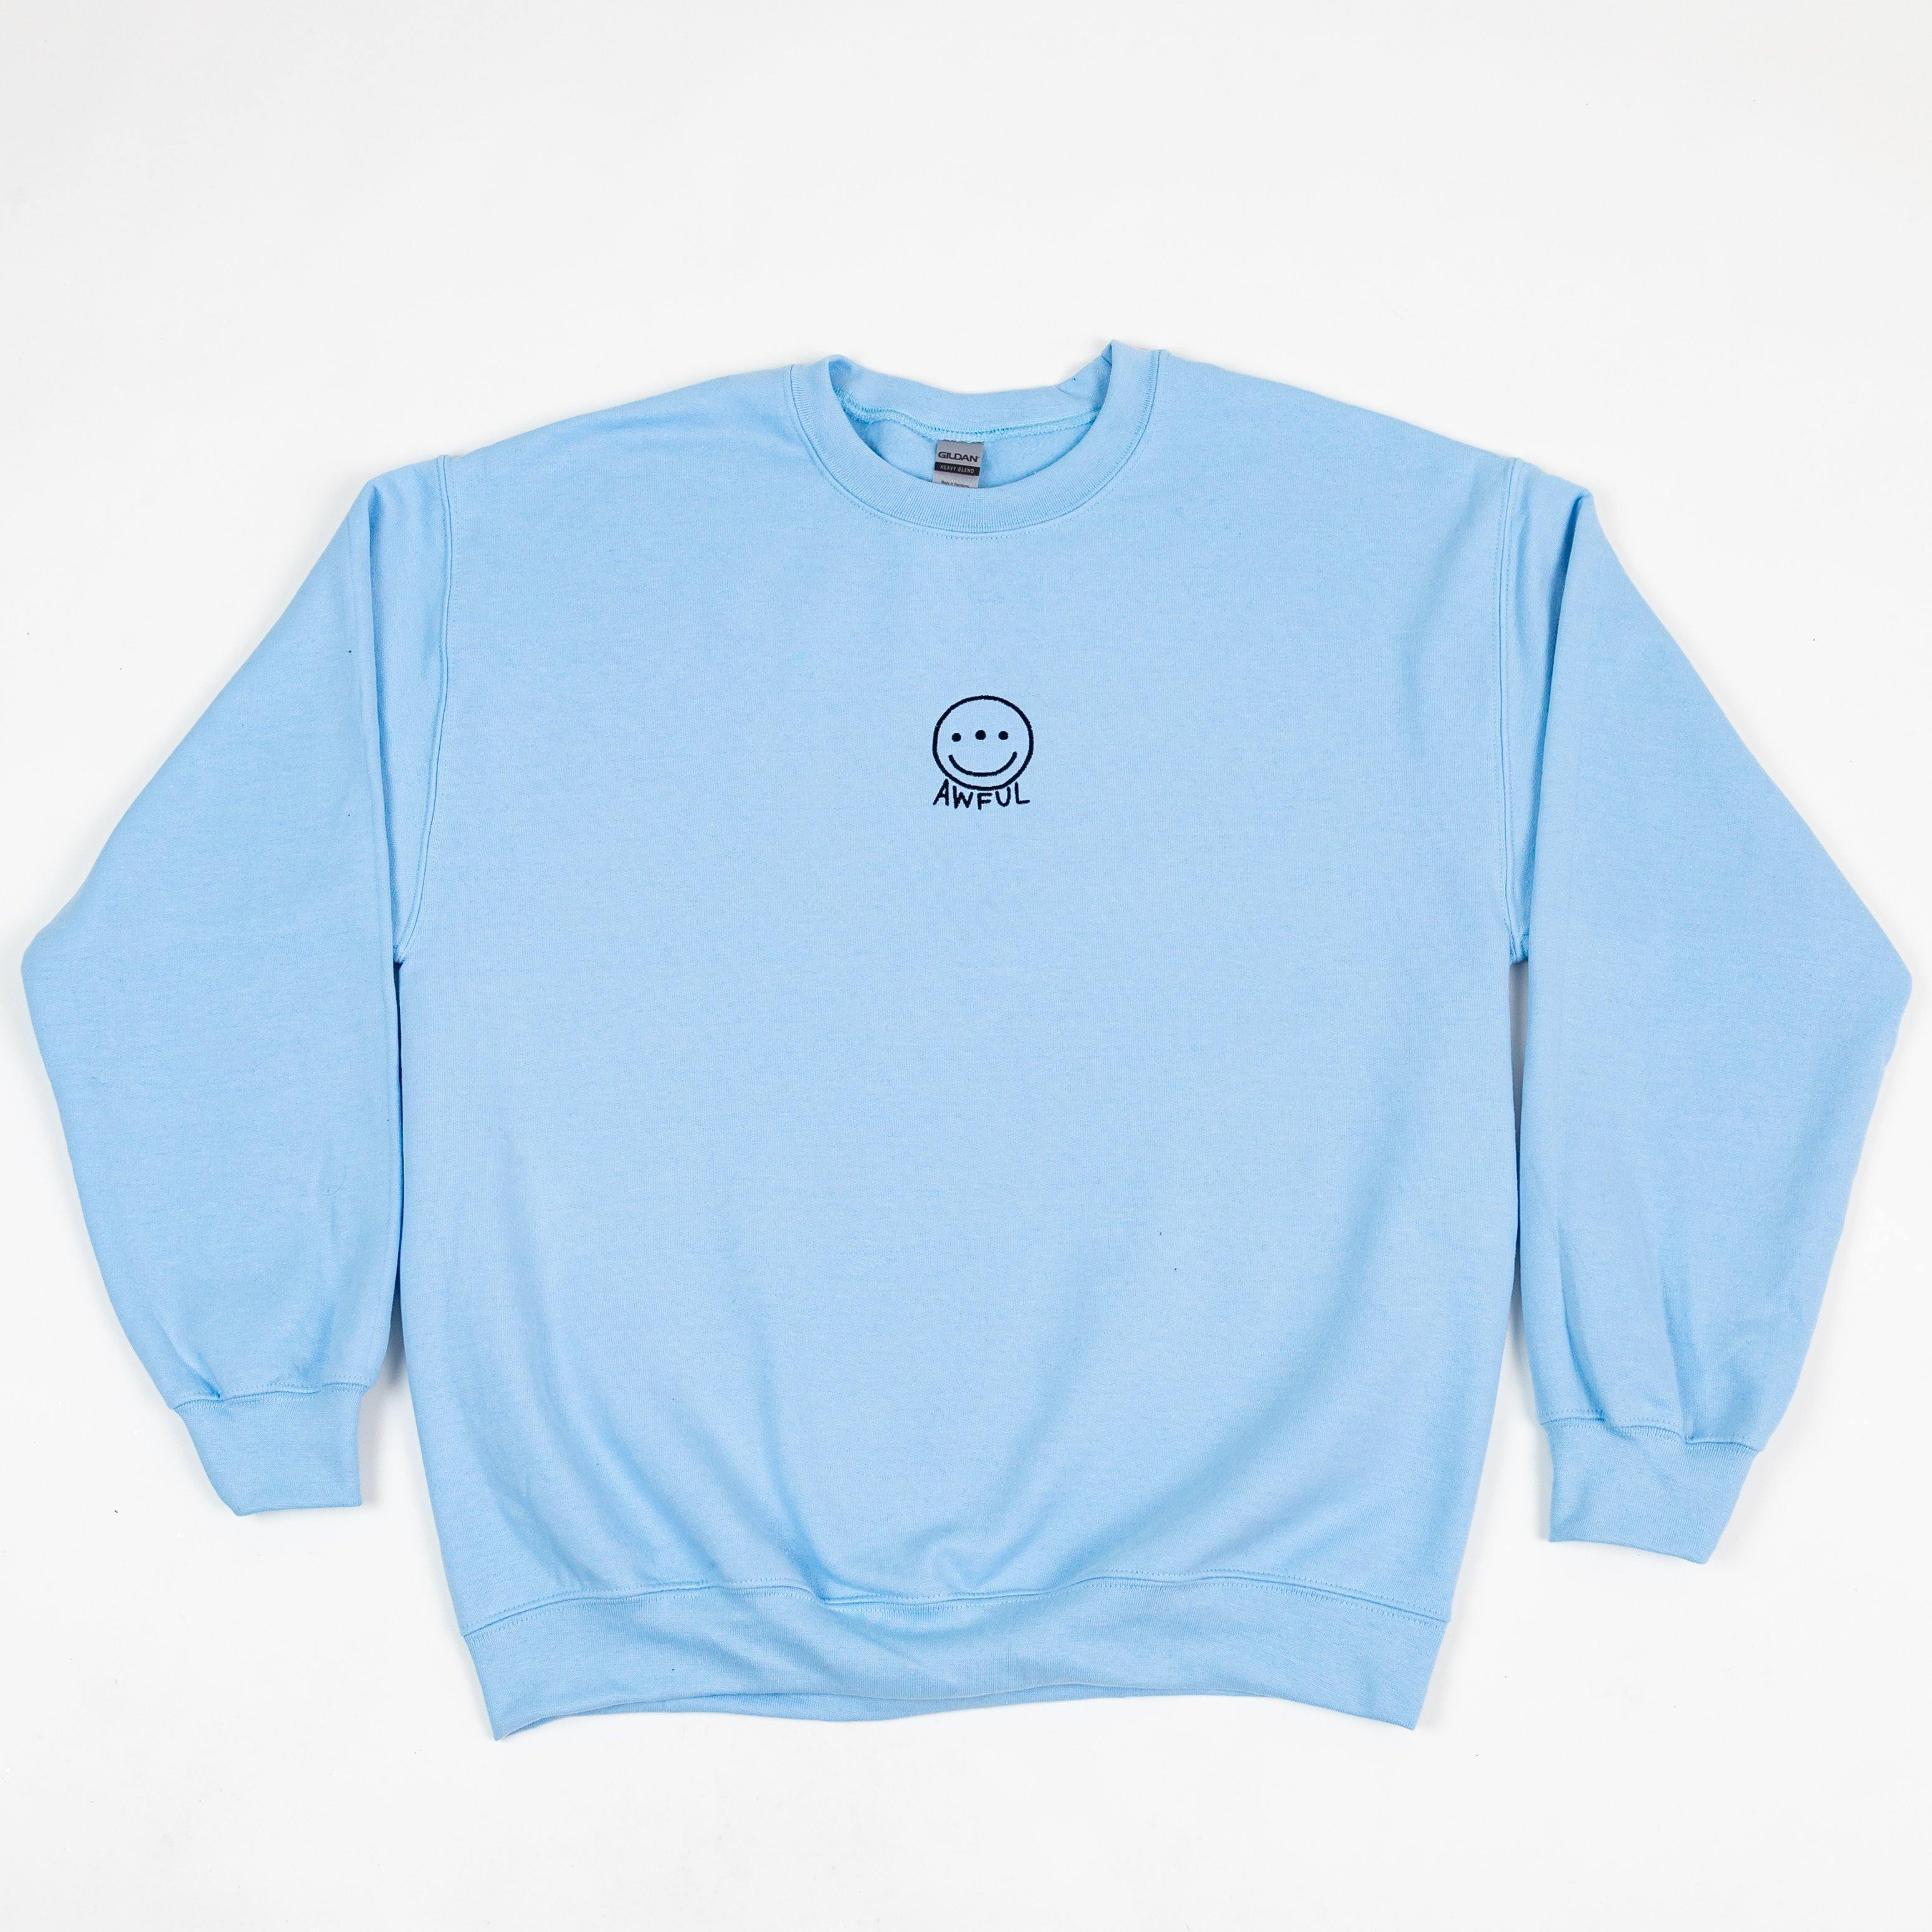 Awful3 Crewneck - Awful Cloth